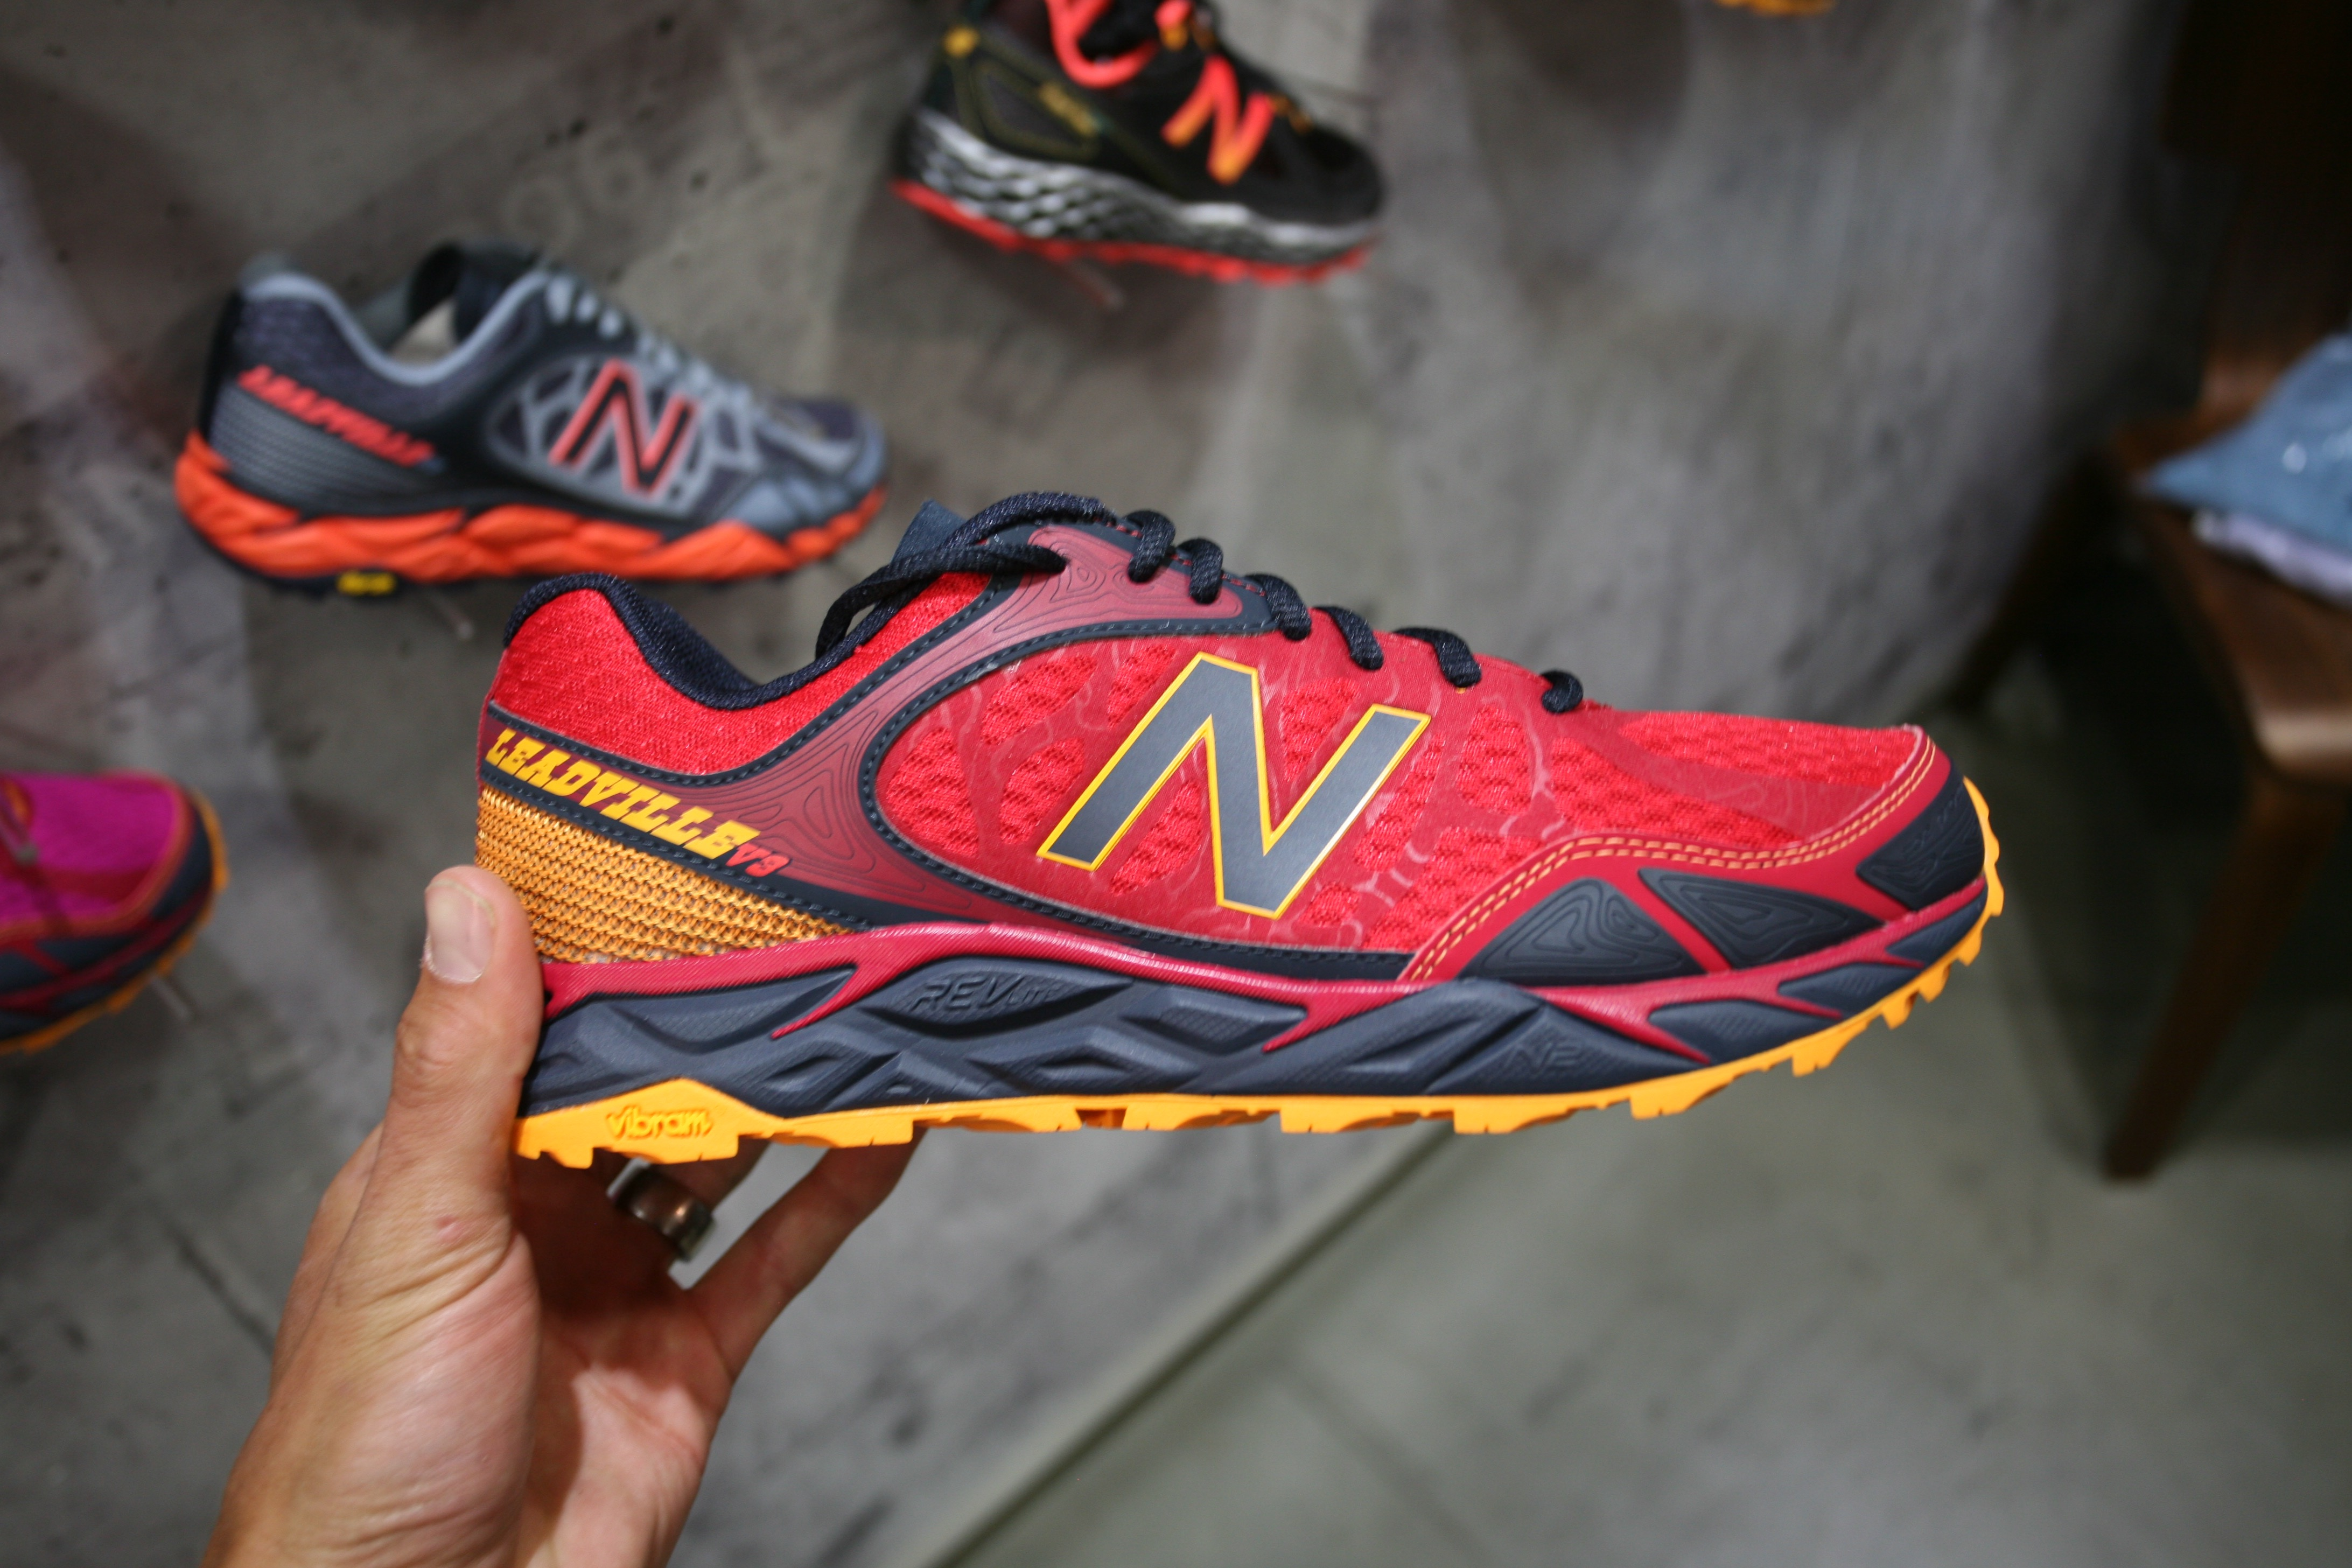 Mucho Hacia atrás Subtropical  New Shoe Roundup: Trail Shoes Coming in 2016